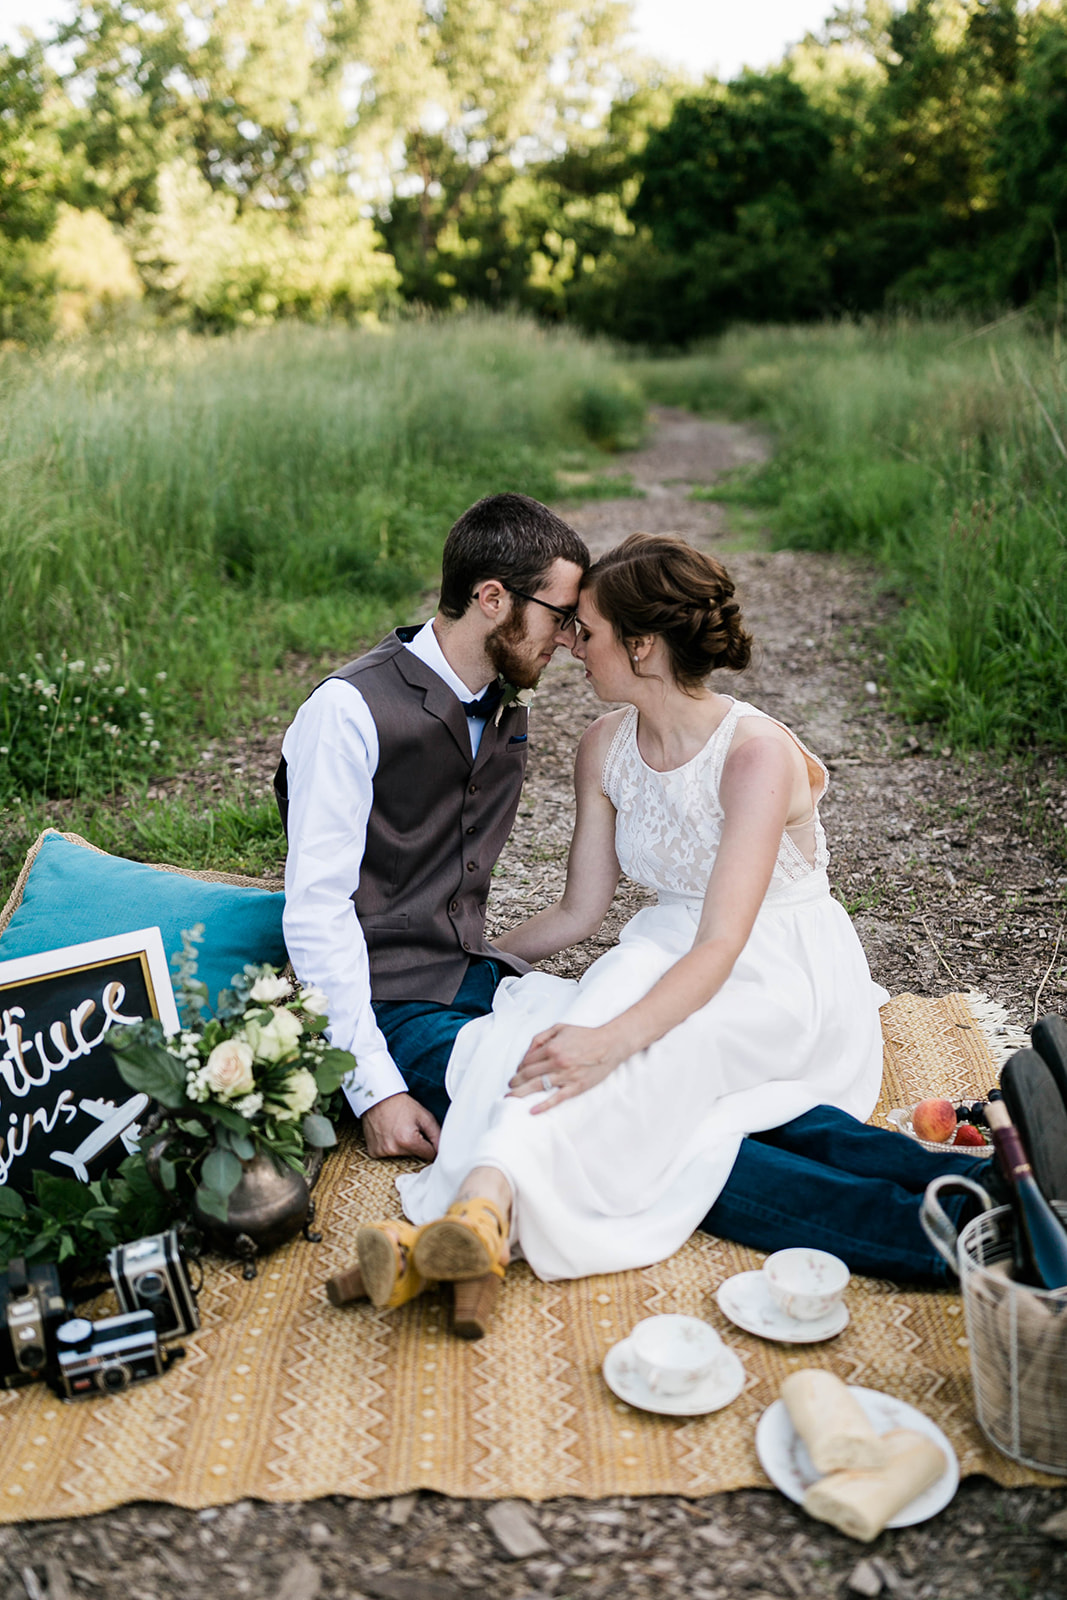 wedding couple in styled wedding photo session with travel themed accents and flowers in silver tea pot in Des Moines iowa